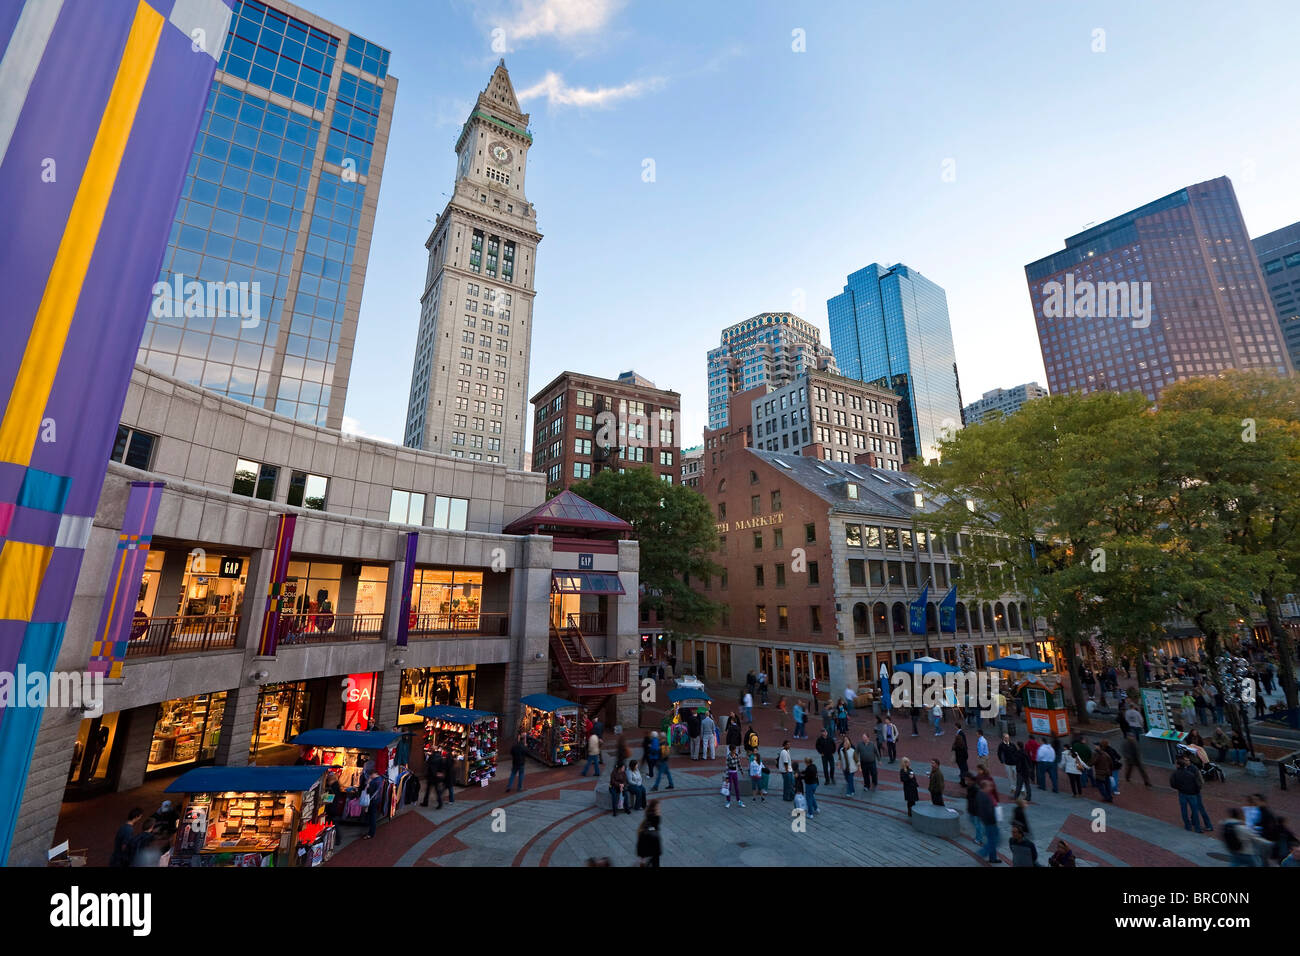 Mercado de Quincy, Boston, Massachusetts, Nueva Inglaterra, EE.UU. Imagen De Stock